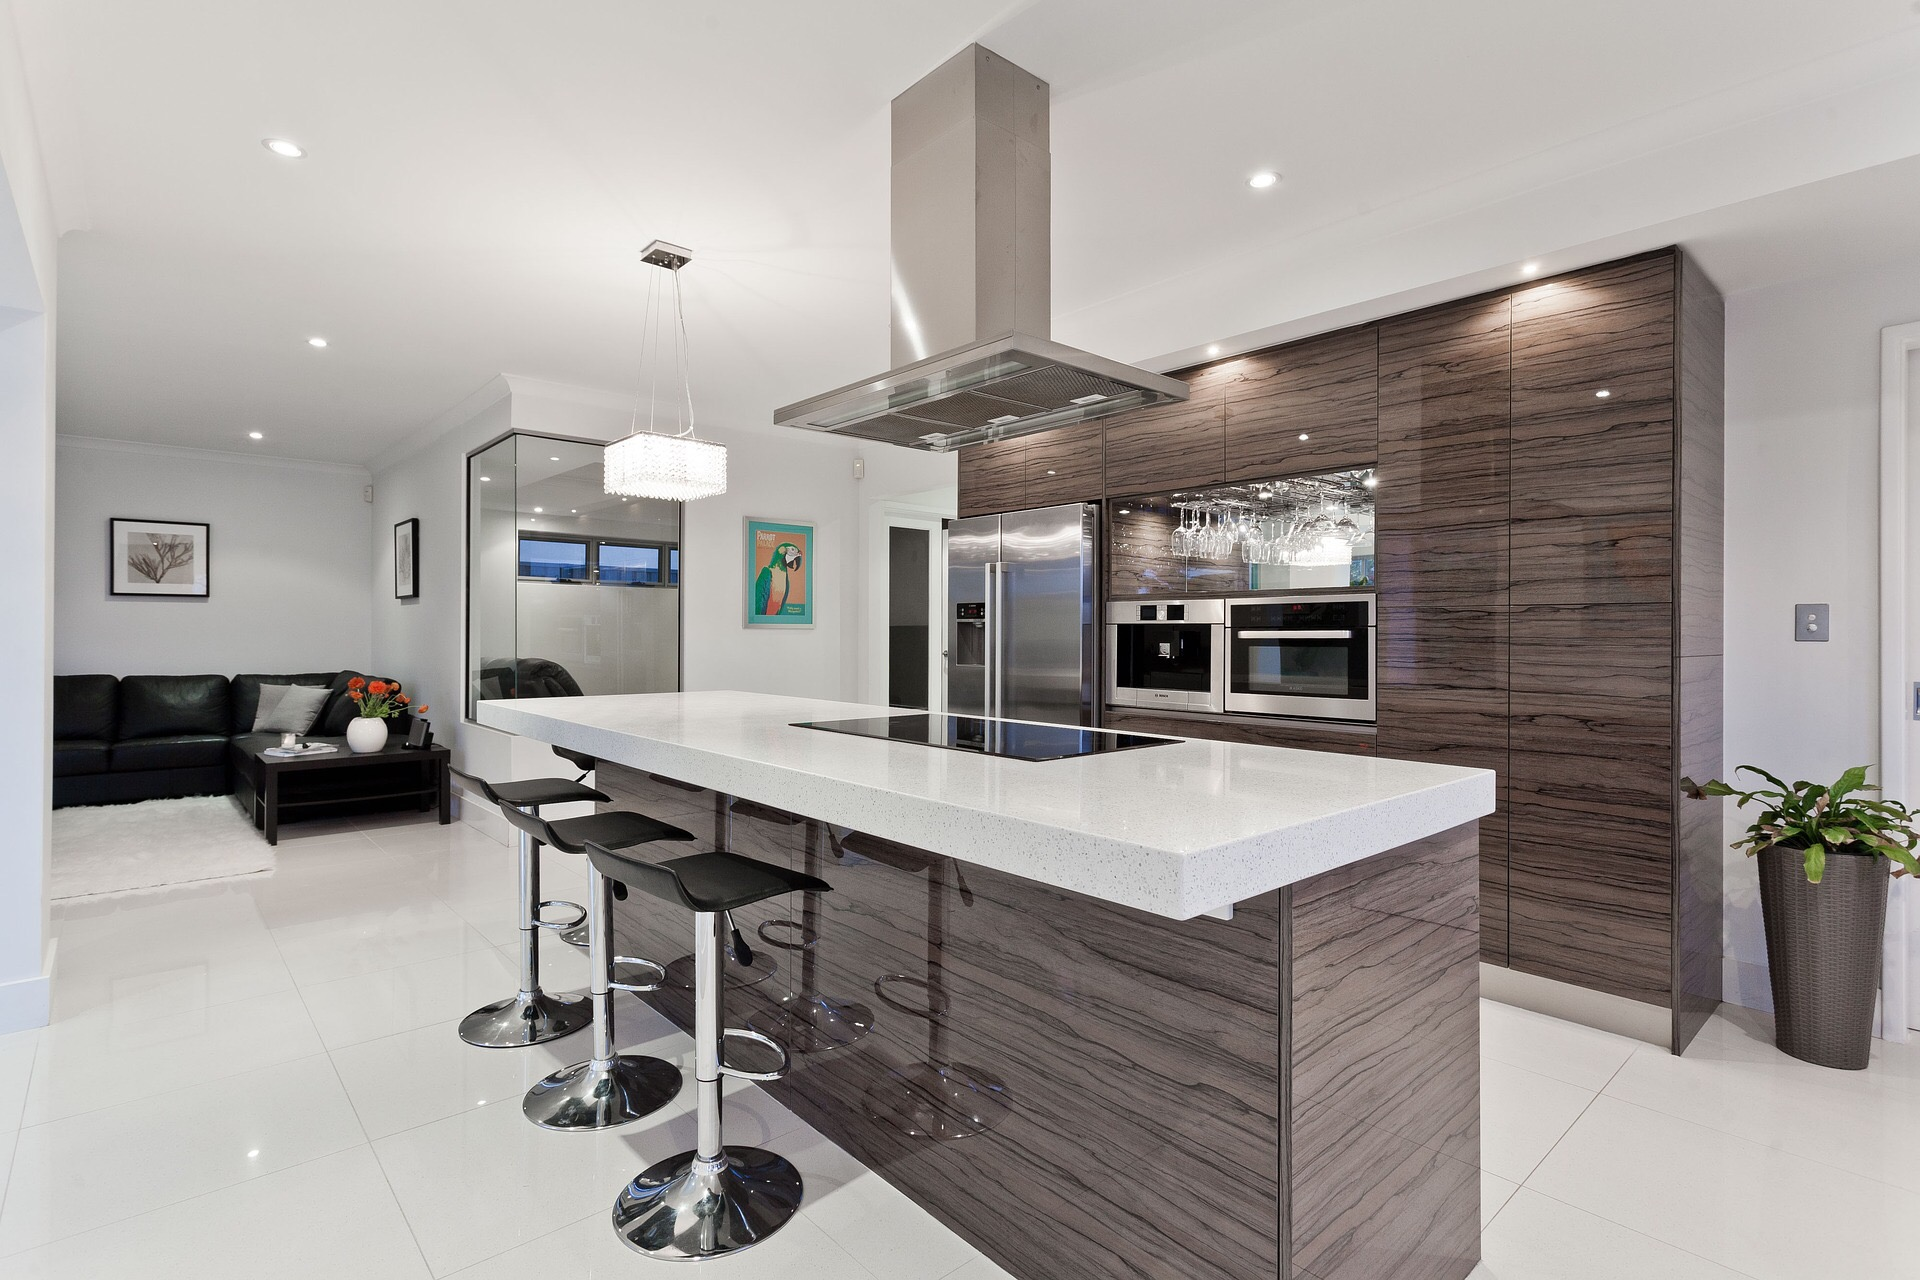 Tips for designing your kitchen layout